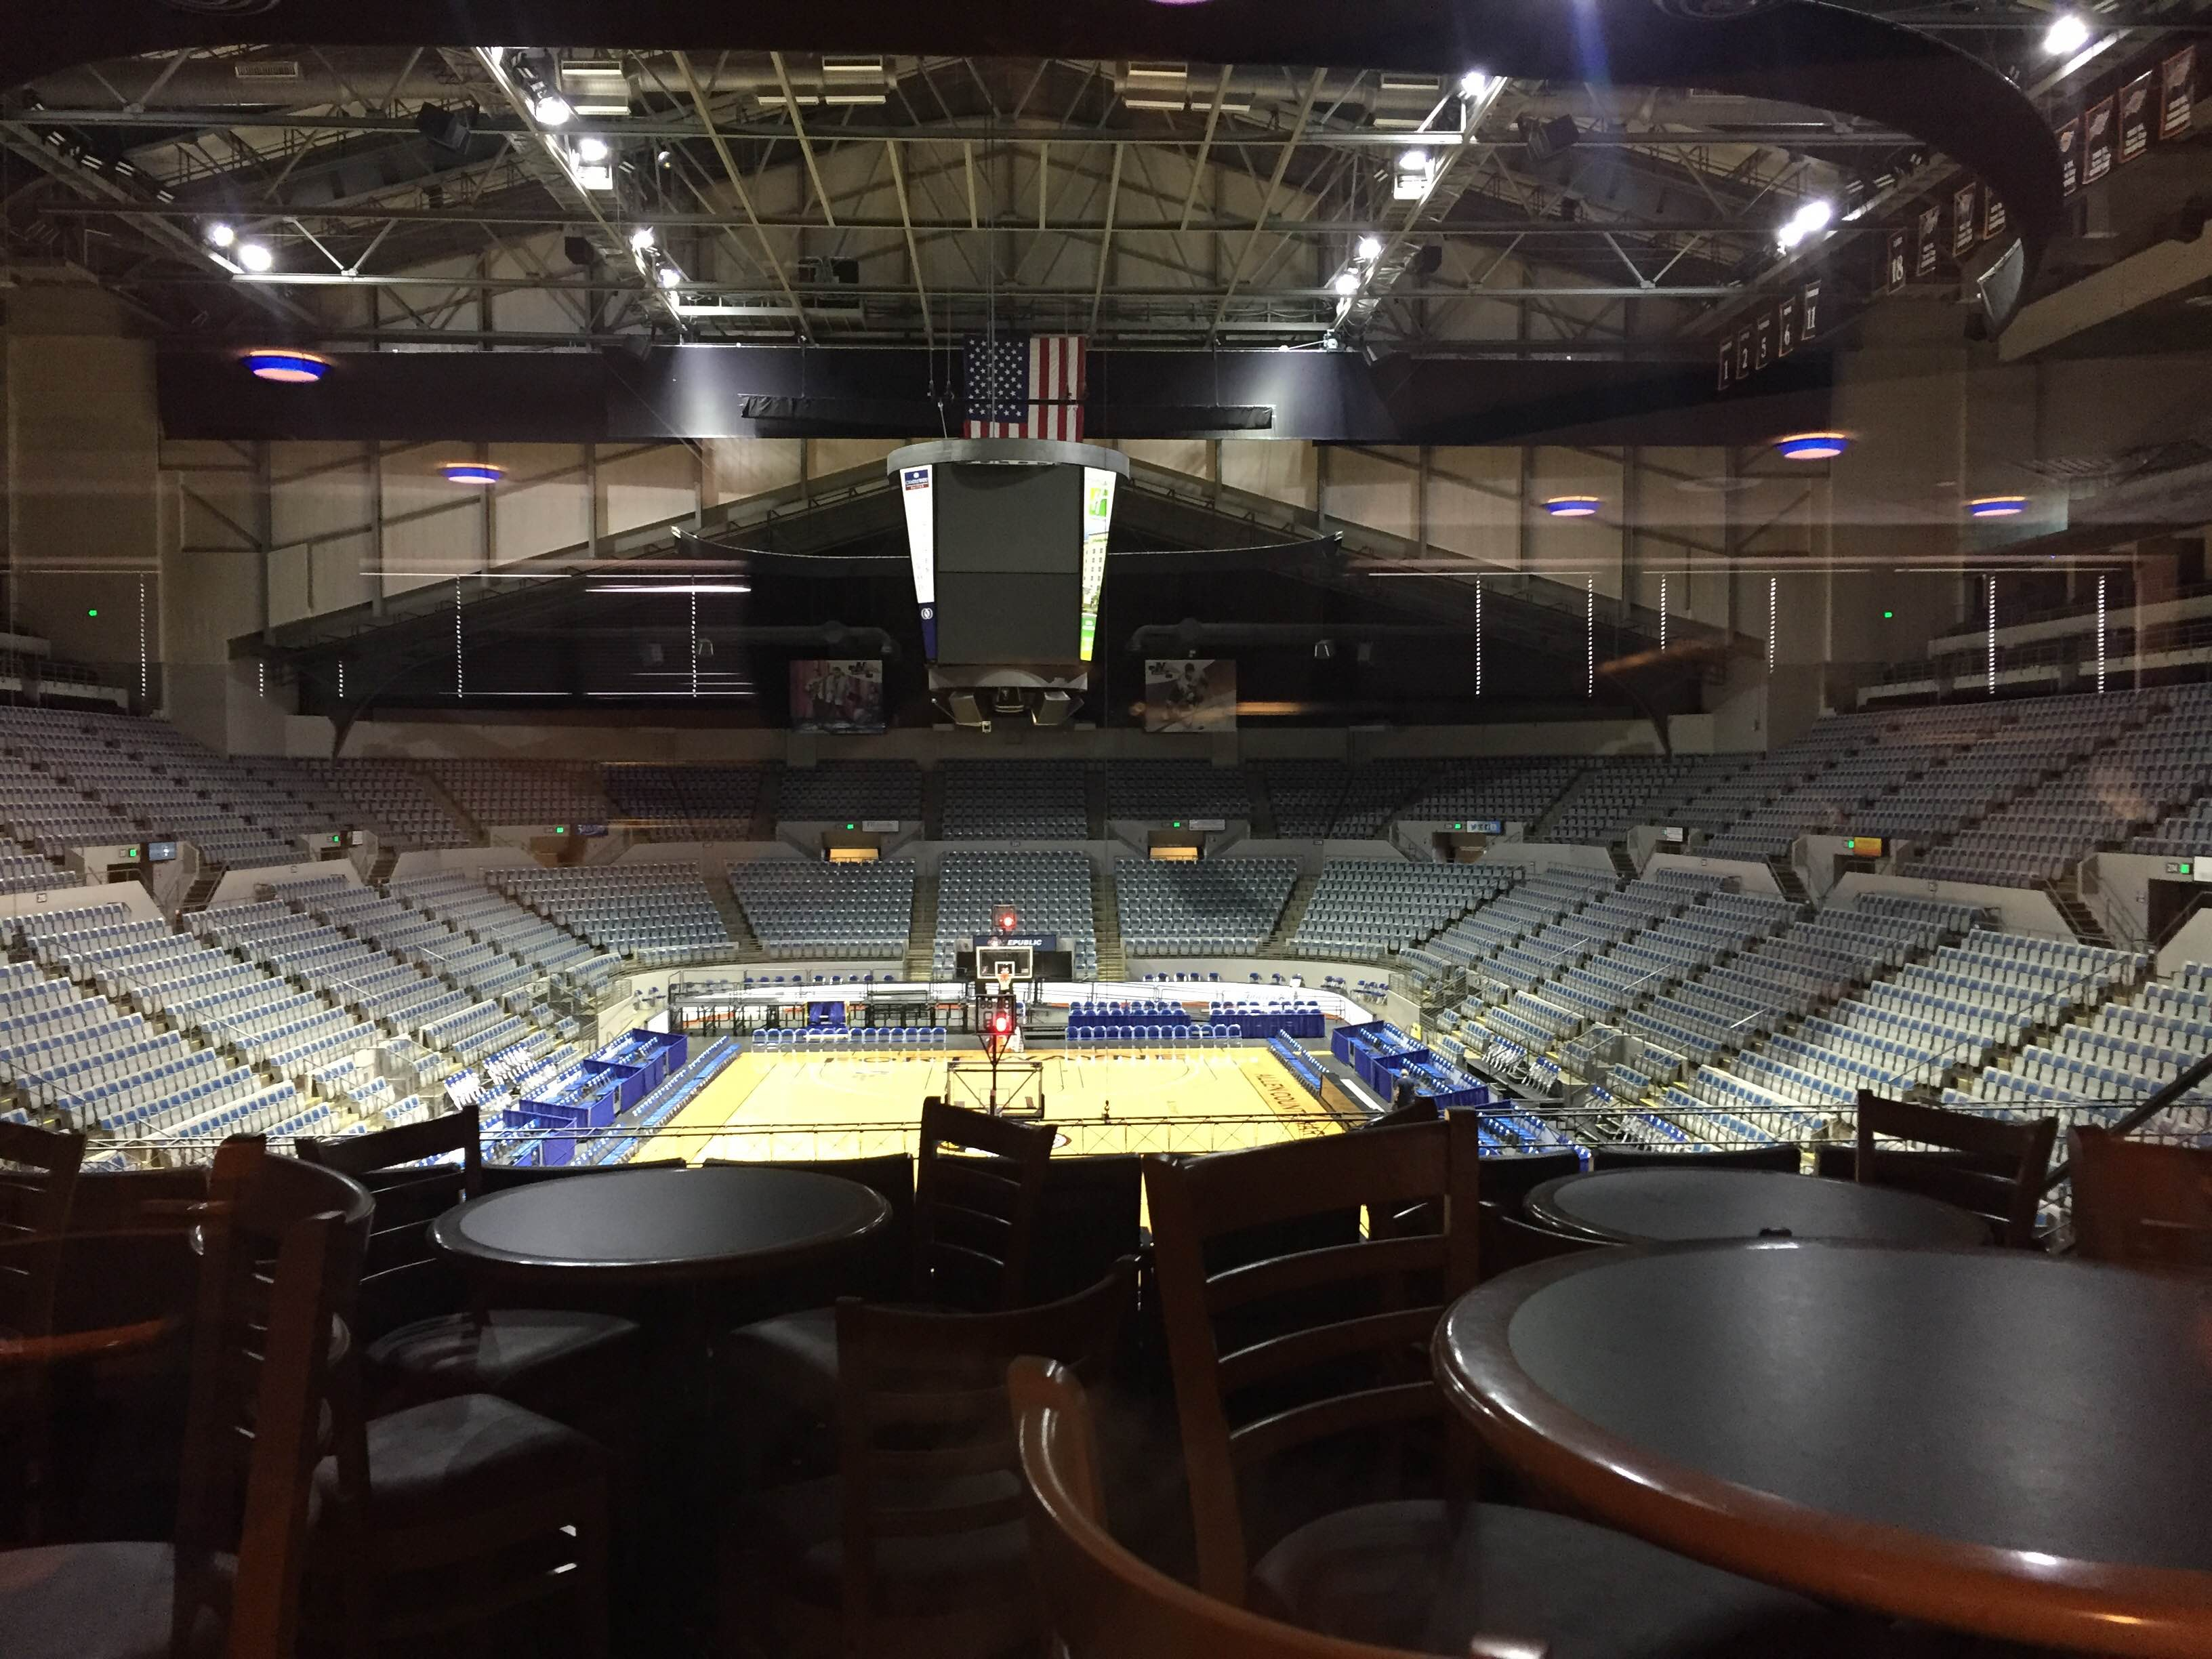 Allen County War Memorial Coliseum - Budweiser Suite Pertaining To Ft. Wayne Memorial Coliseum Event Calander